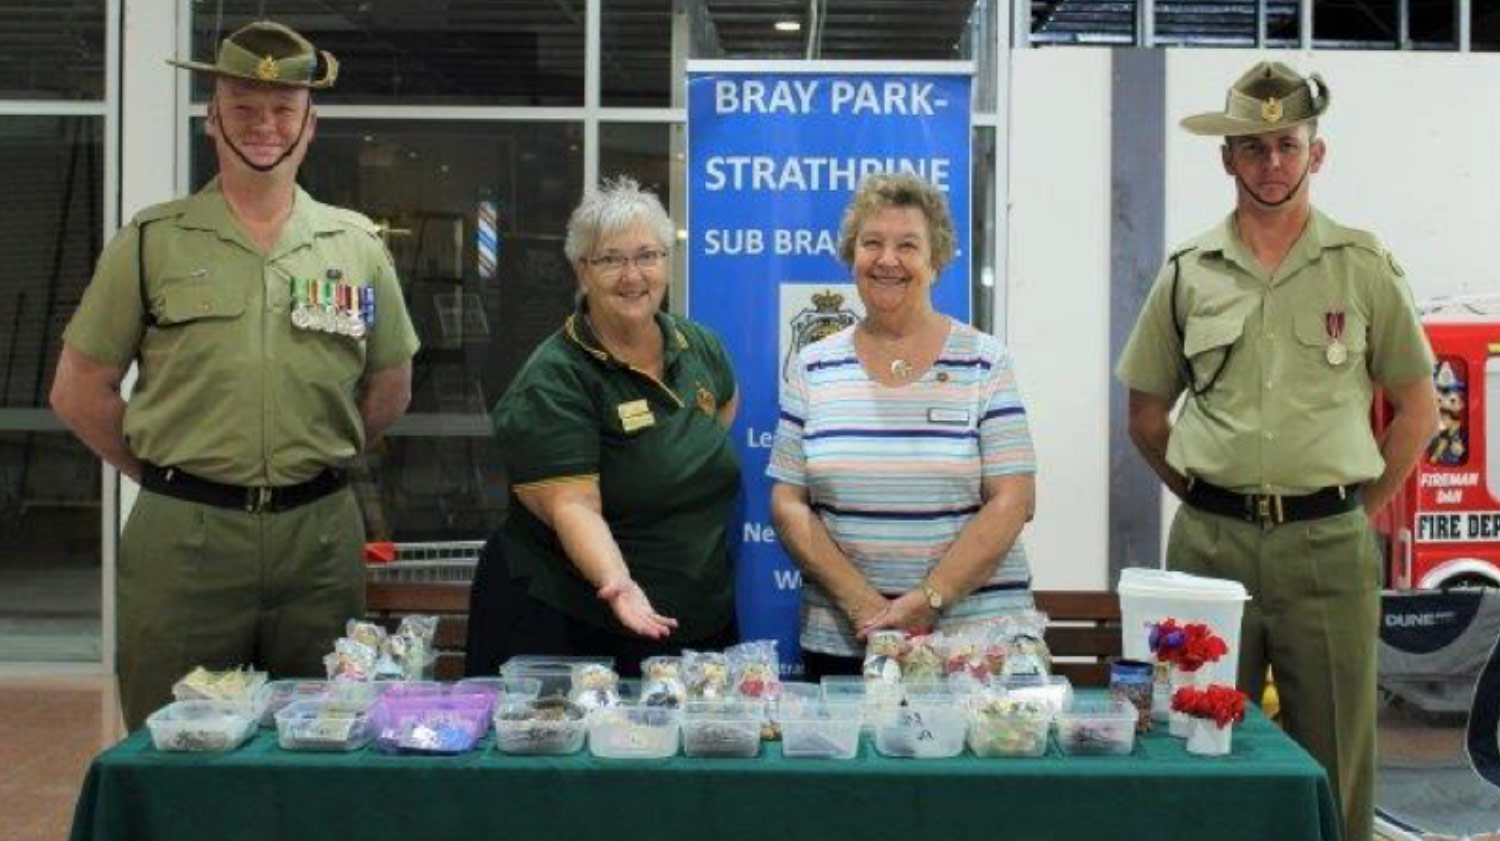 RSL Brisbane North Bray Park Strathpine RSL Subbranch